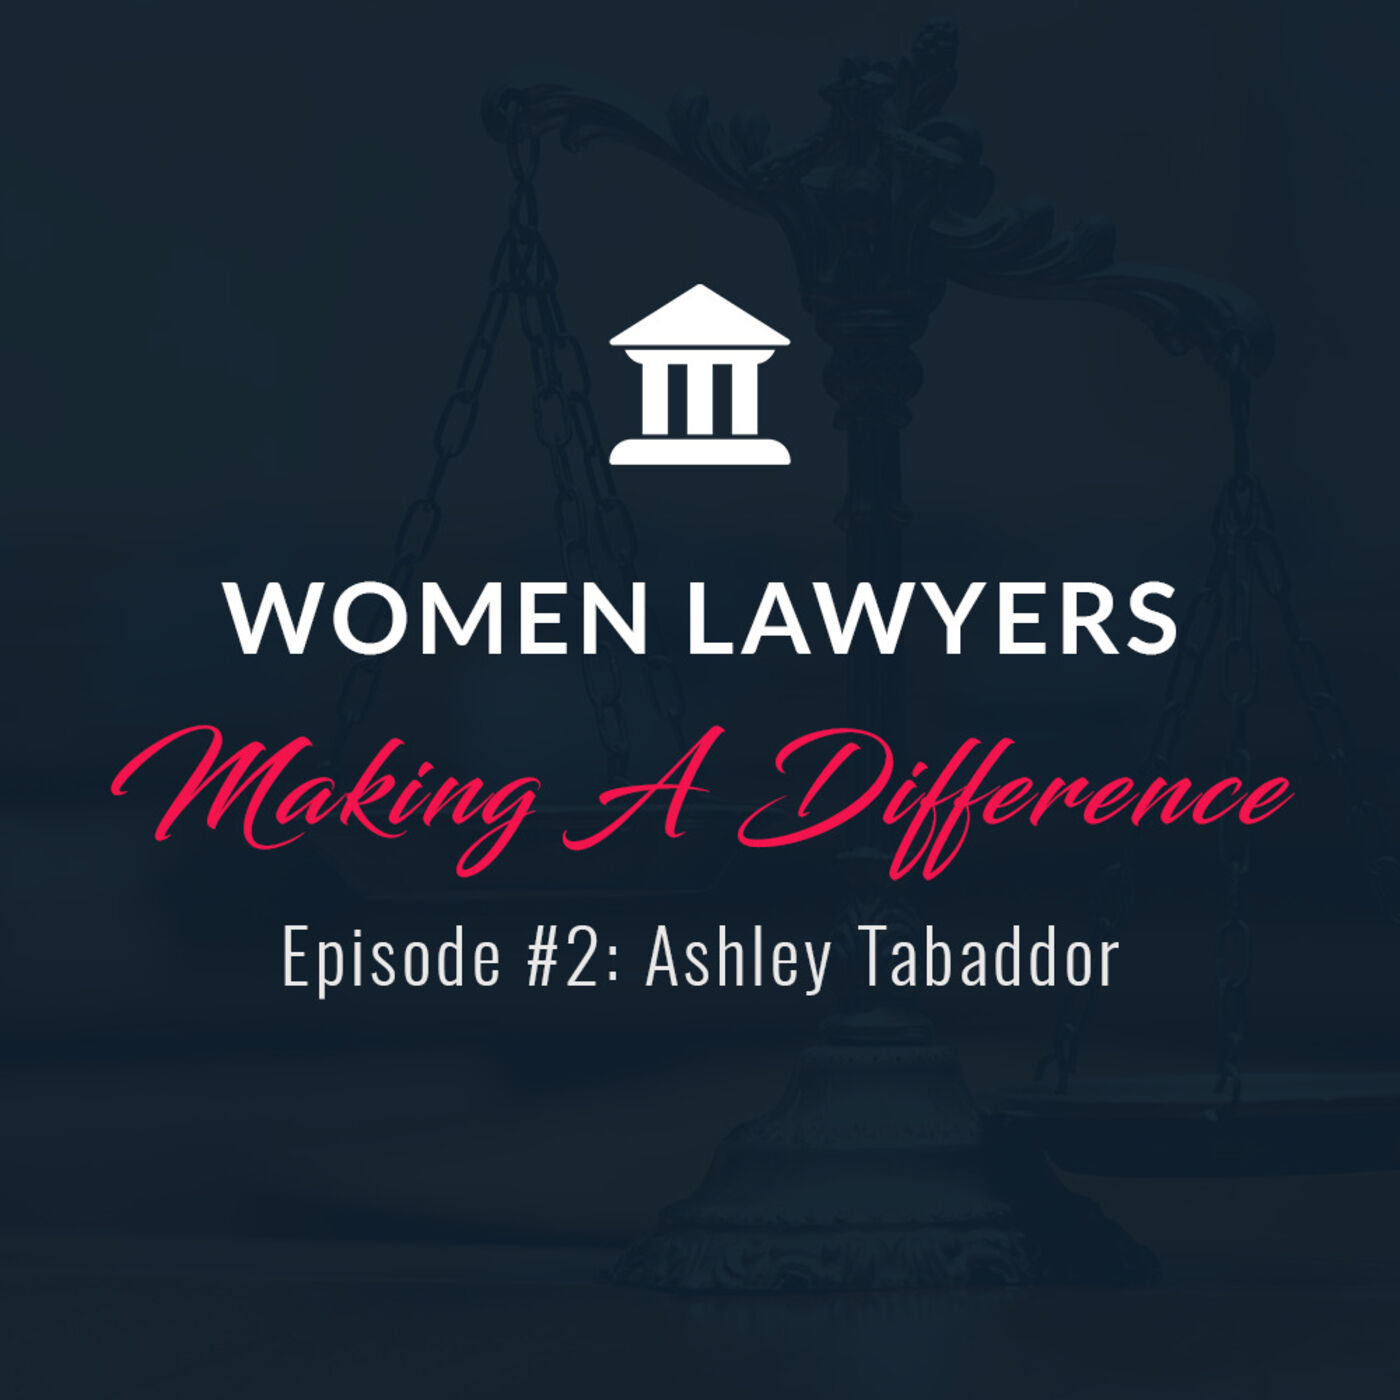 Women Lawyers Making A Difference: Interview with Judge Ashley Tabaddor